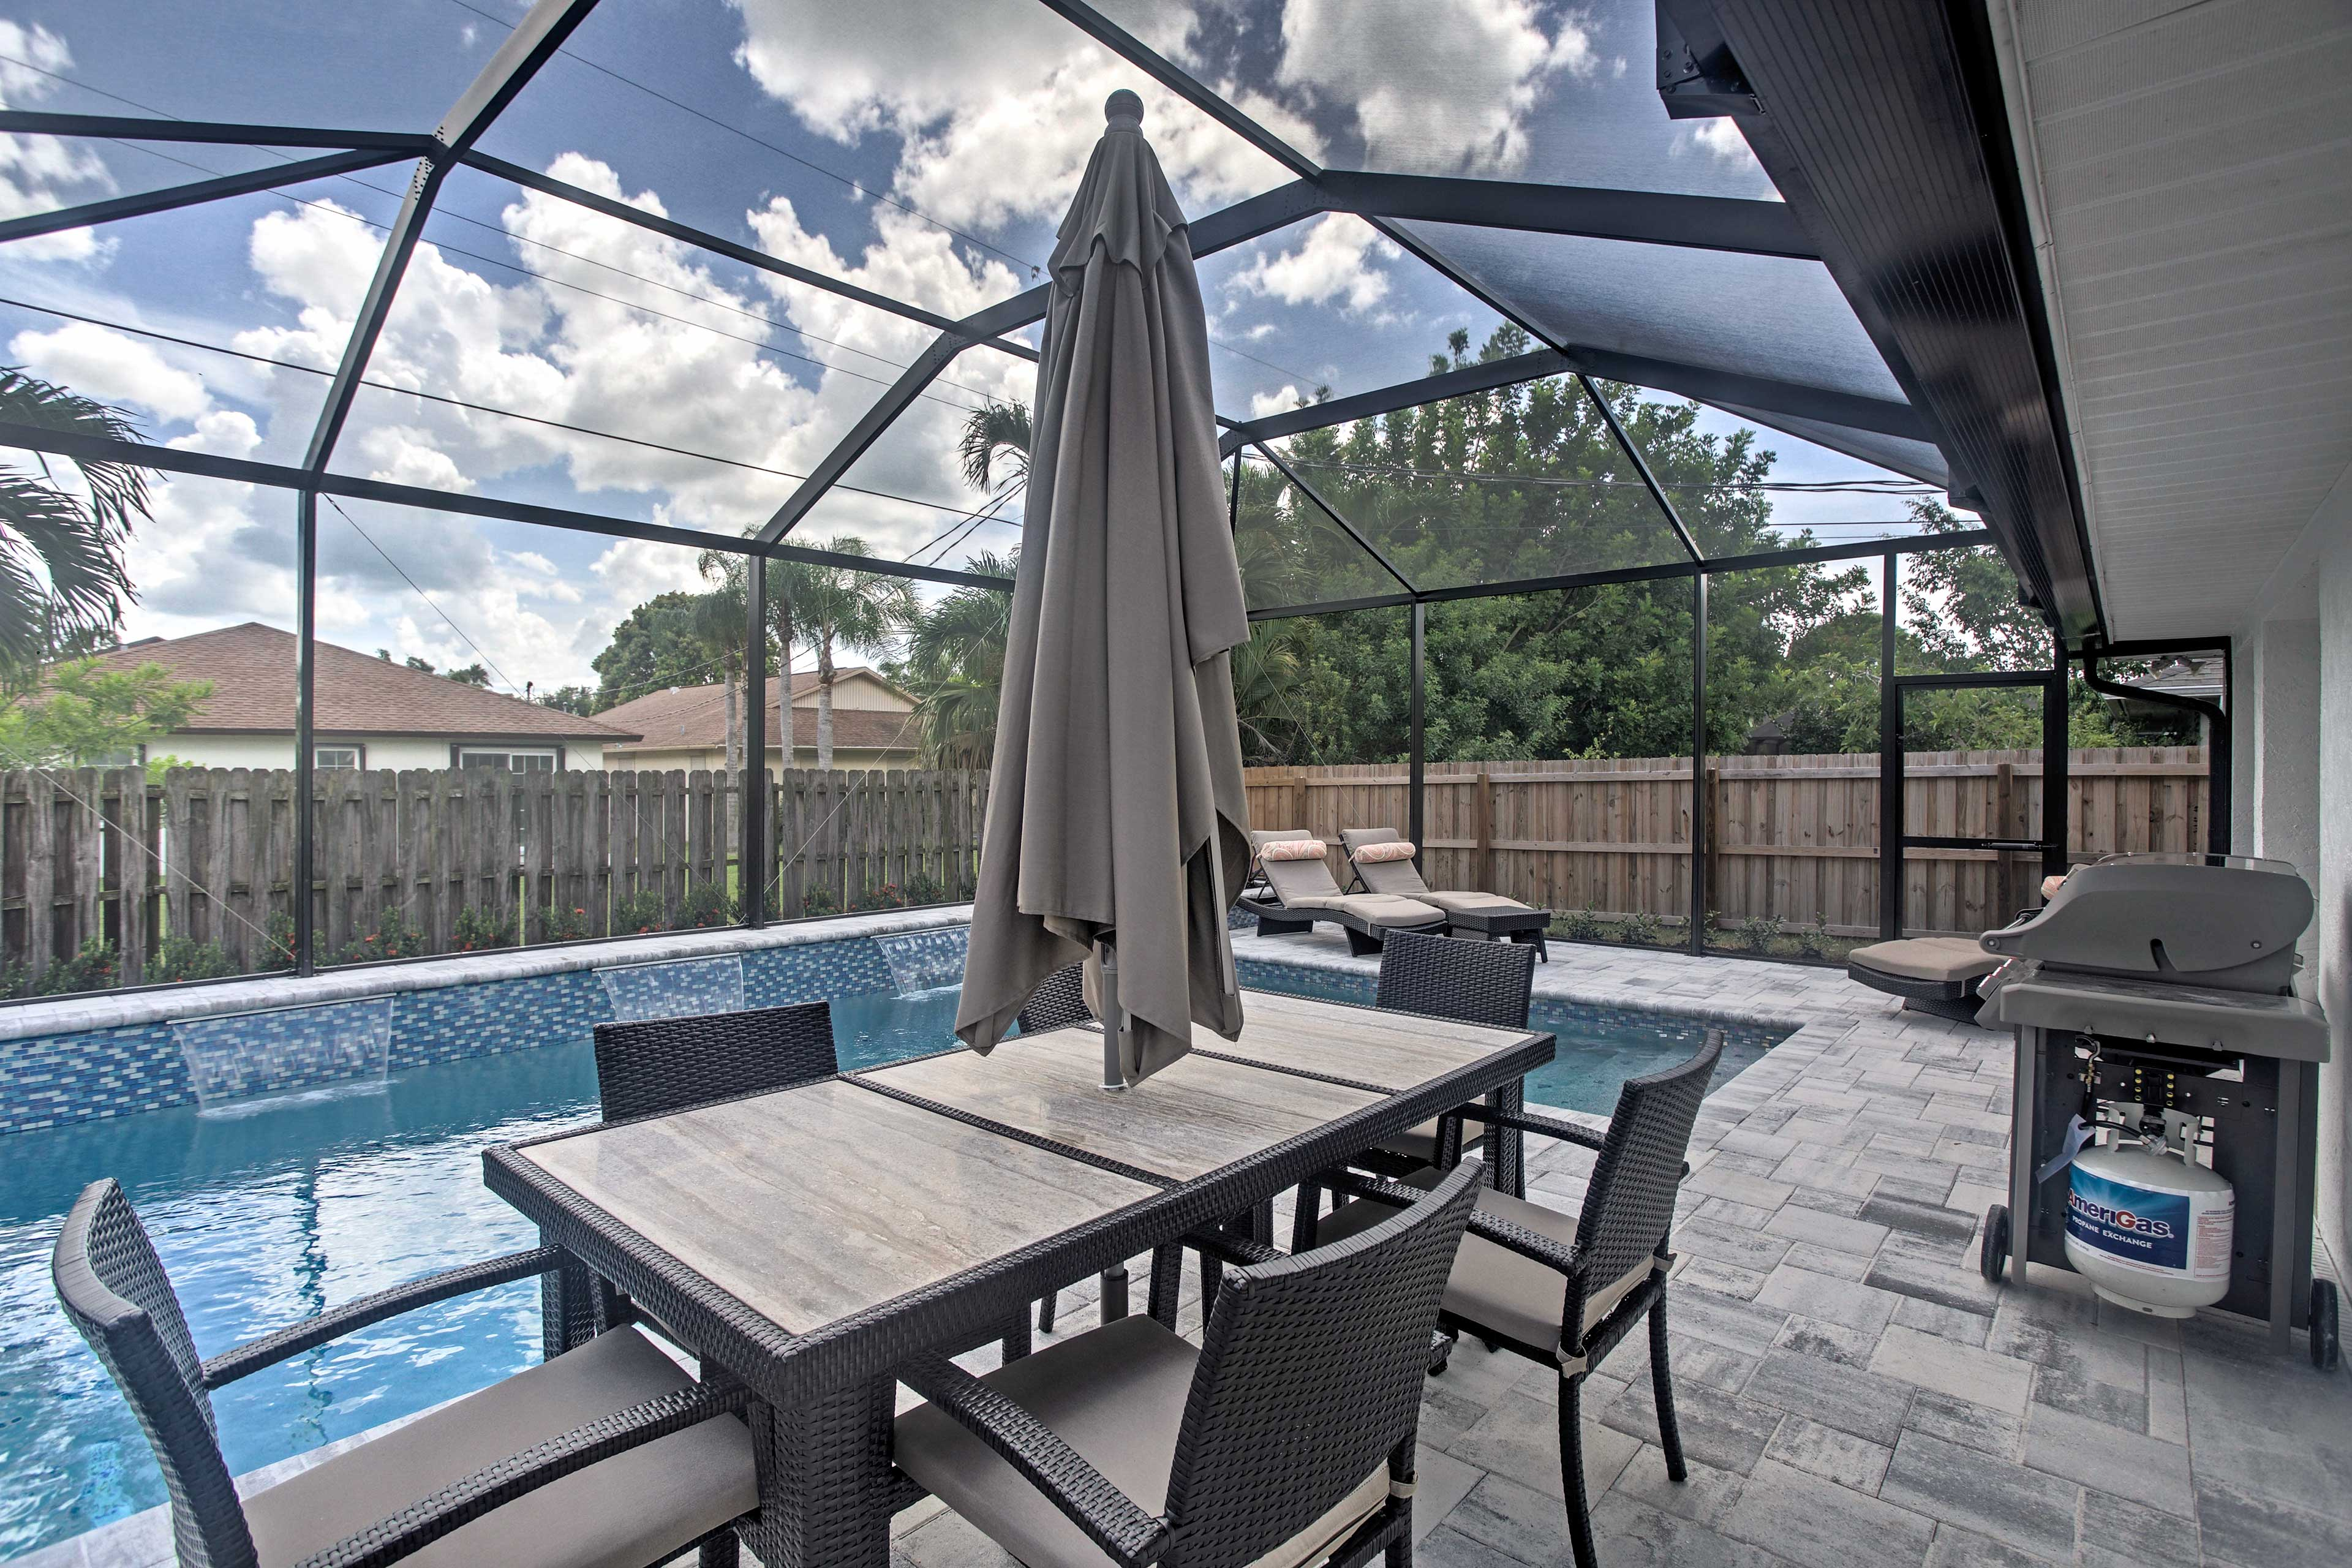 Head outside to this beautiful and private screen porch with outdoor seating.